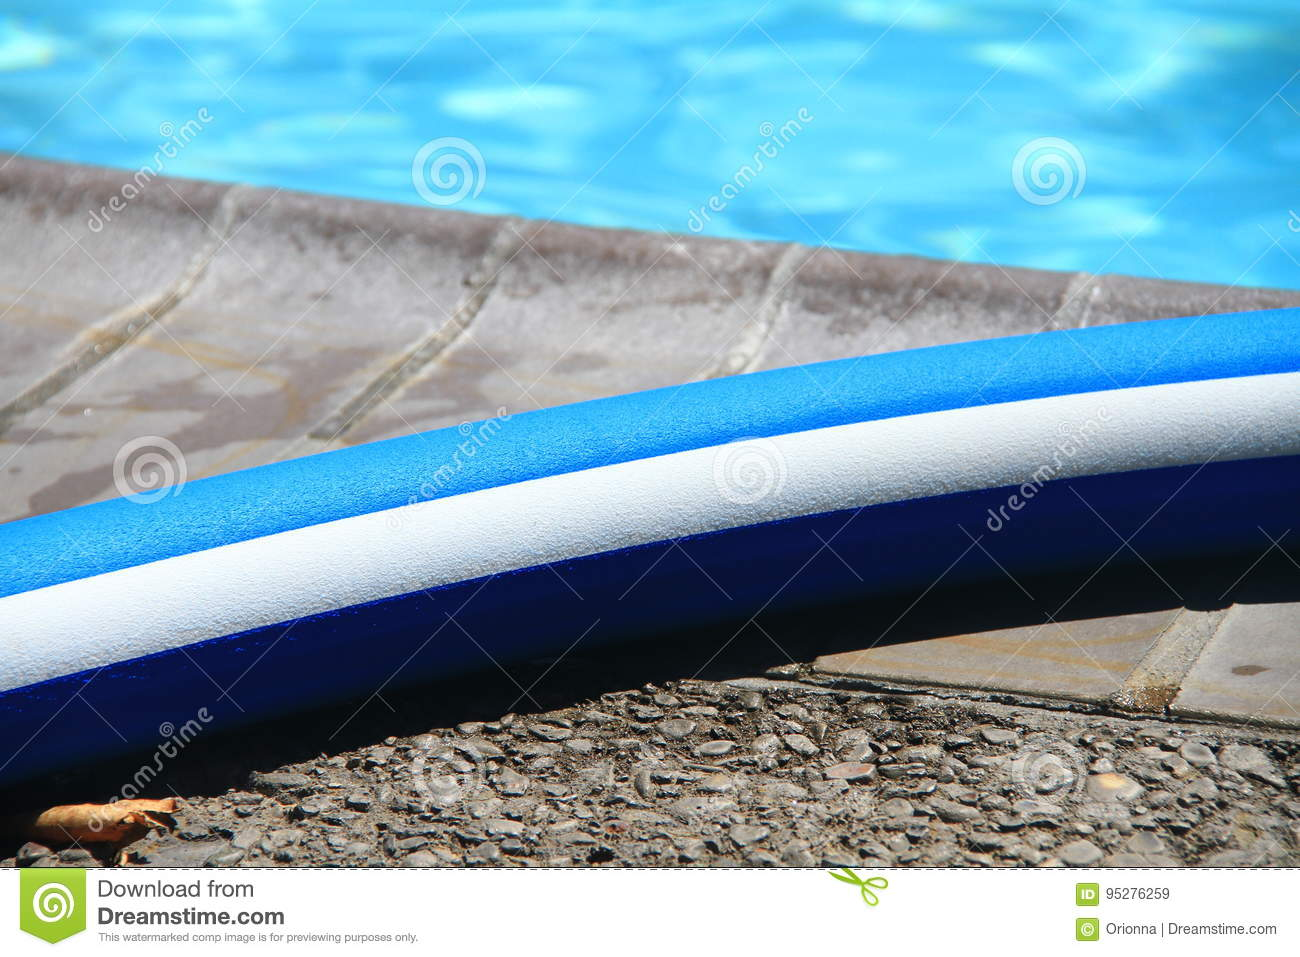 Pool noodle by the swimming pool